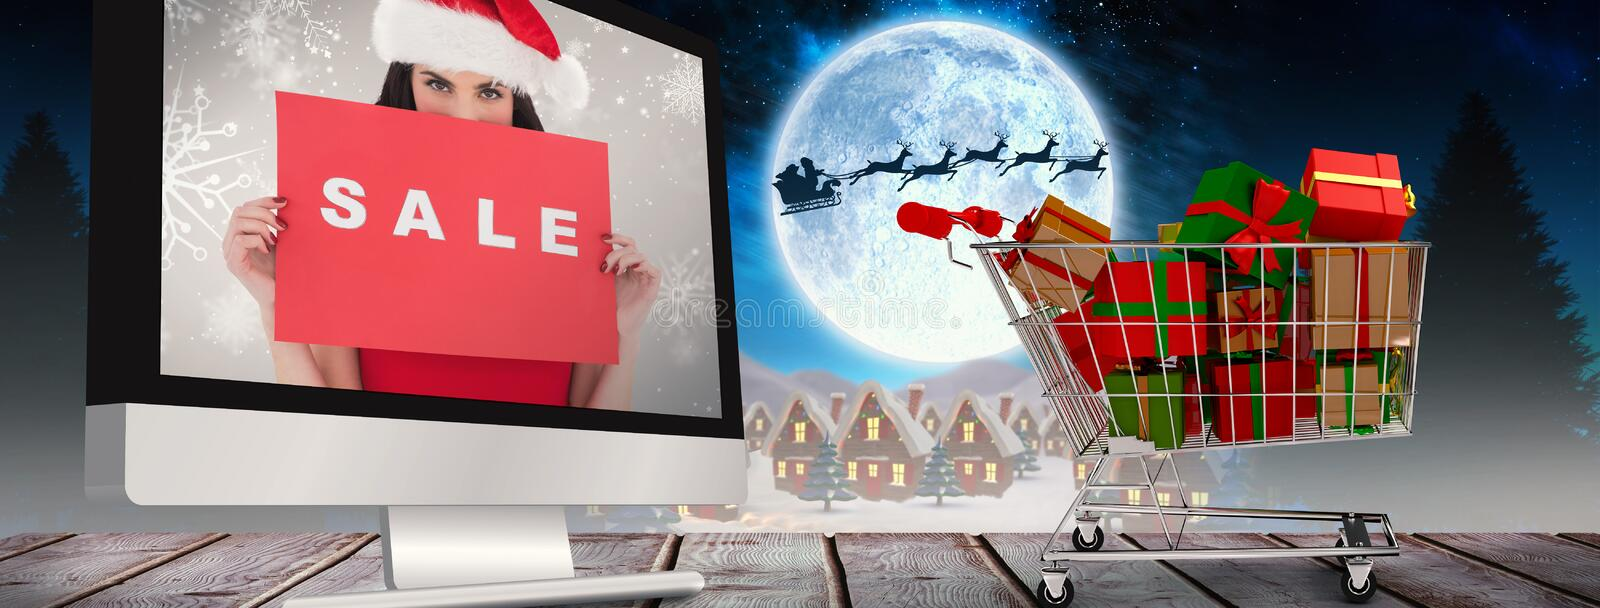 Composite image of brunette in red dress holding sale sign royalty free stock image